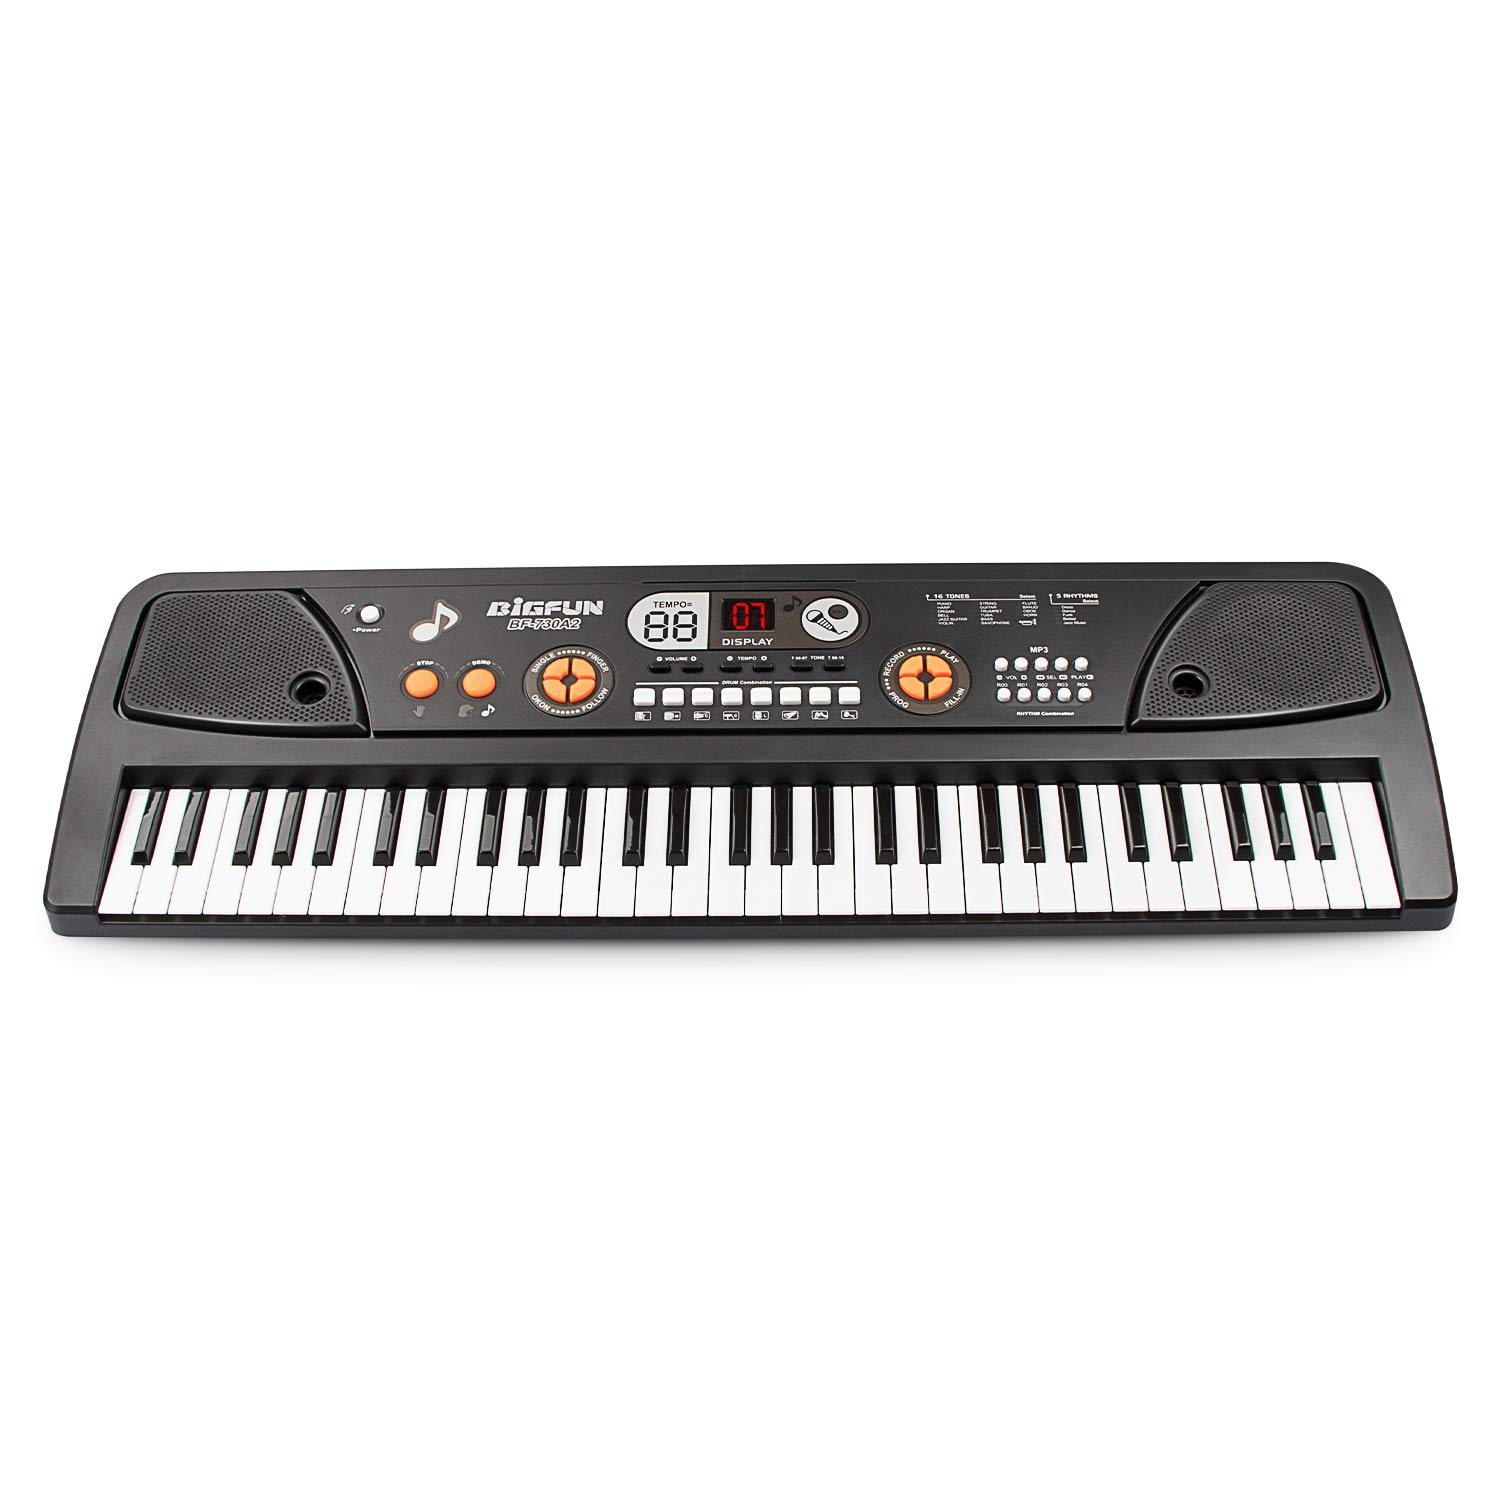 SAOCOOL Portable Keyboards, 61 Keys Multifunction Piano Keyboard Electronic Piano Keyboard Music Piano Toys with Microphone (Black)